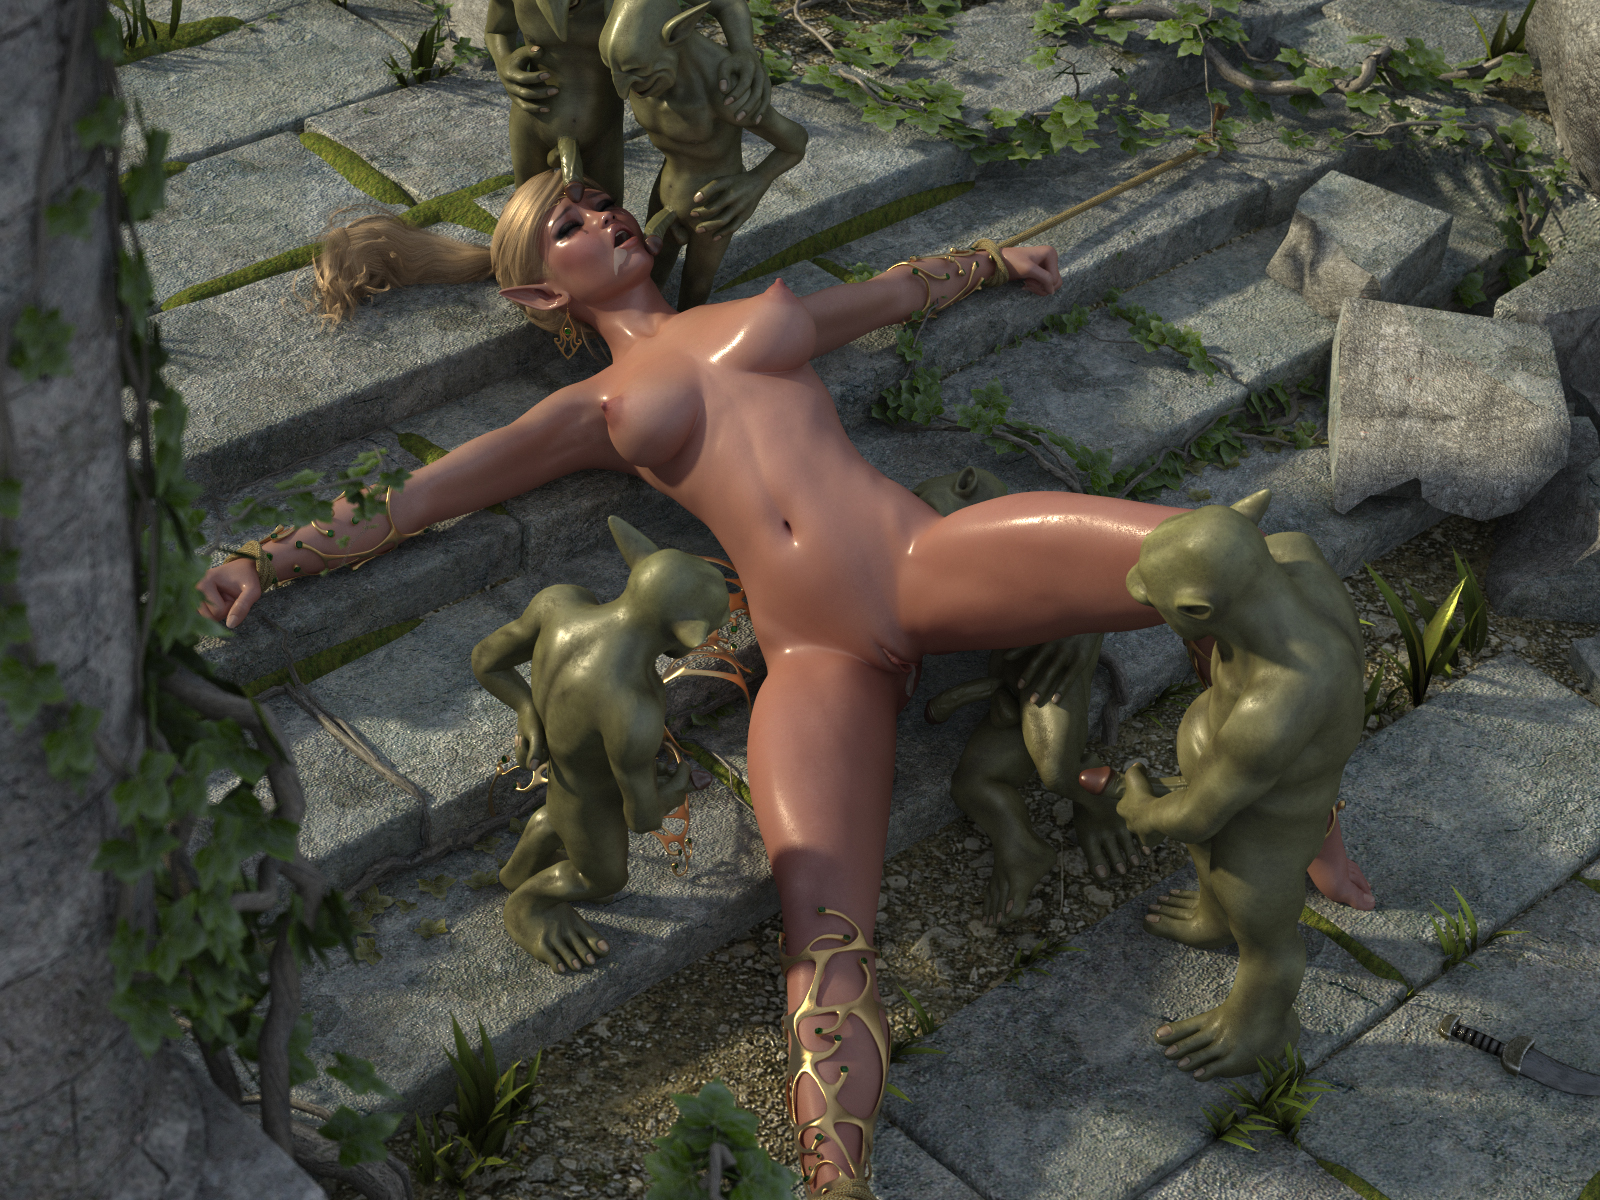 Anime girl fucked by goblins xxx picture